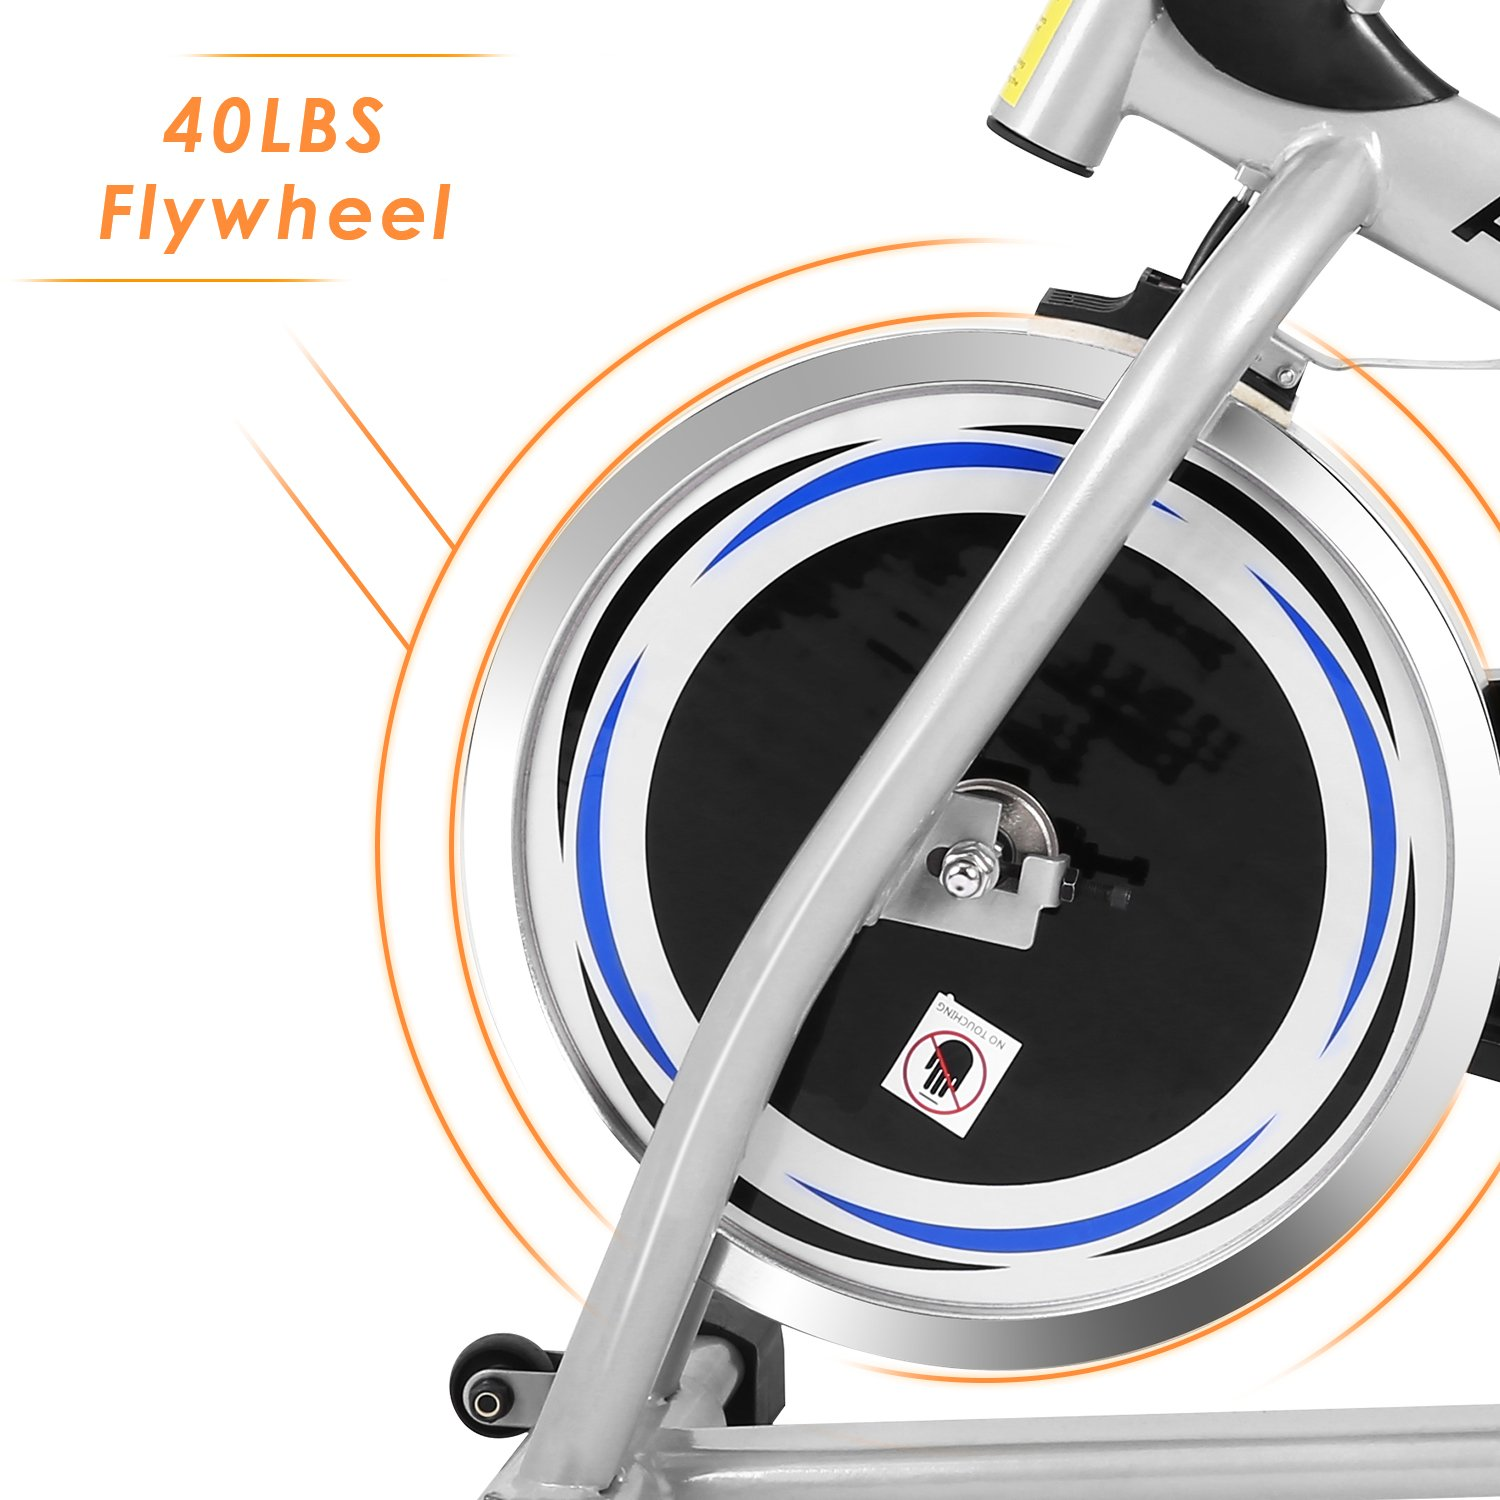 ANCHEER Stationary Bike, 40 LBS Flywheel Belt Drive Indoor Cycling Exercise Bike with Pulse, Elbow Tray (Model: ANCHEER-A5001) (Sliver) by ANCHEER (Image #3)